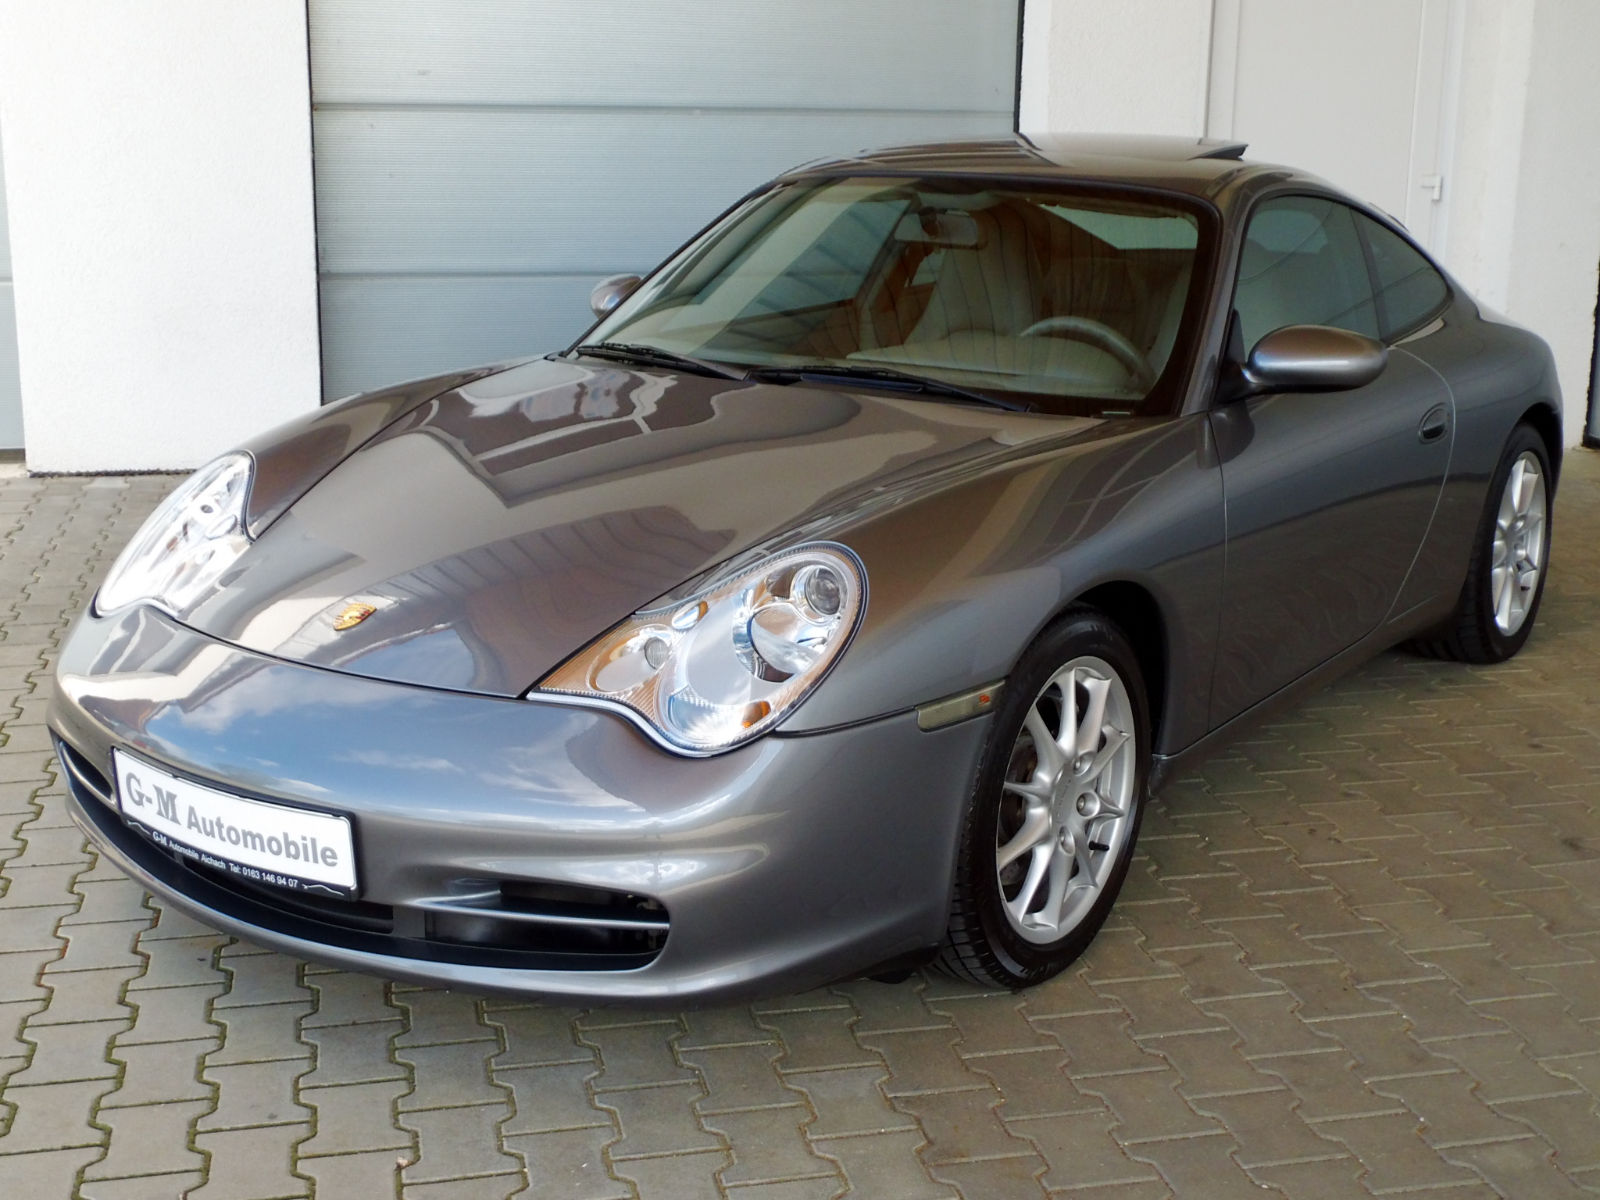 lhd PORSCHE 911 996 (08/2003) - GREY METALLIC - lieu: